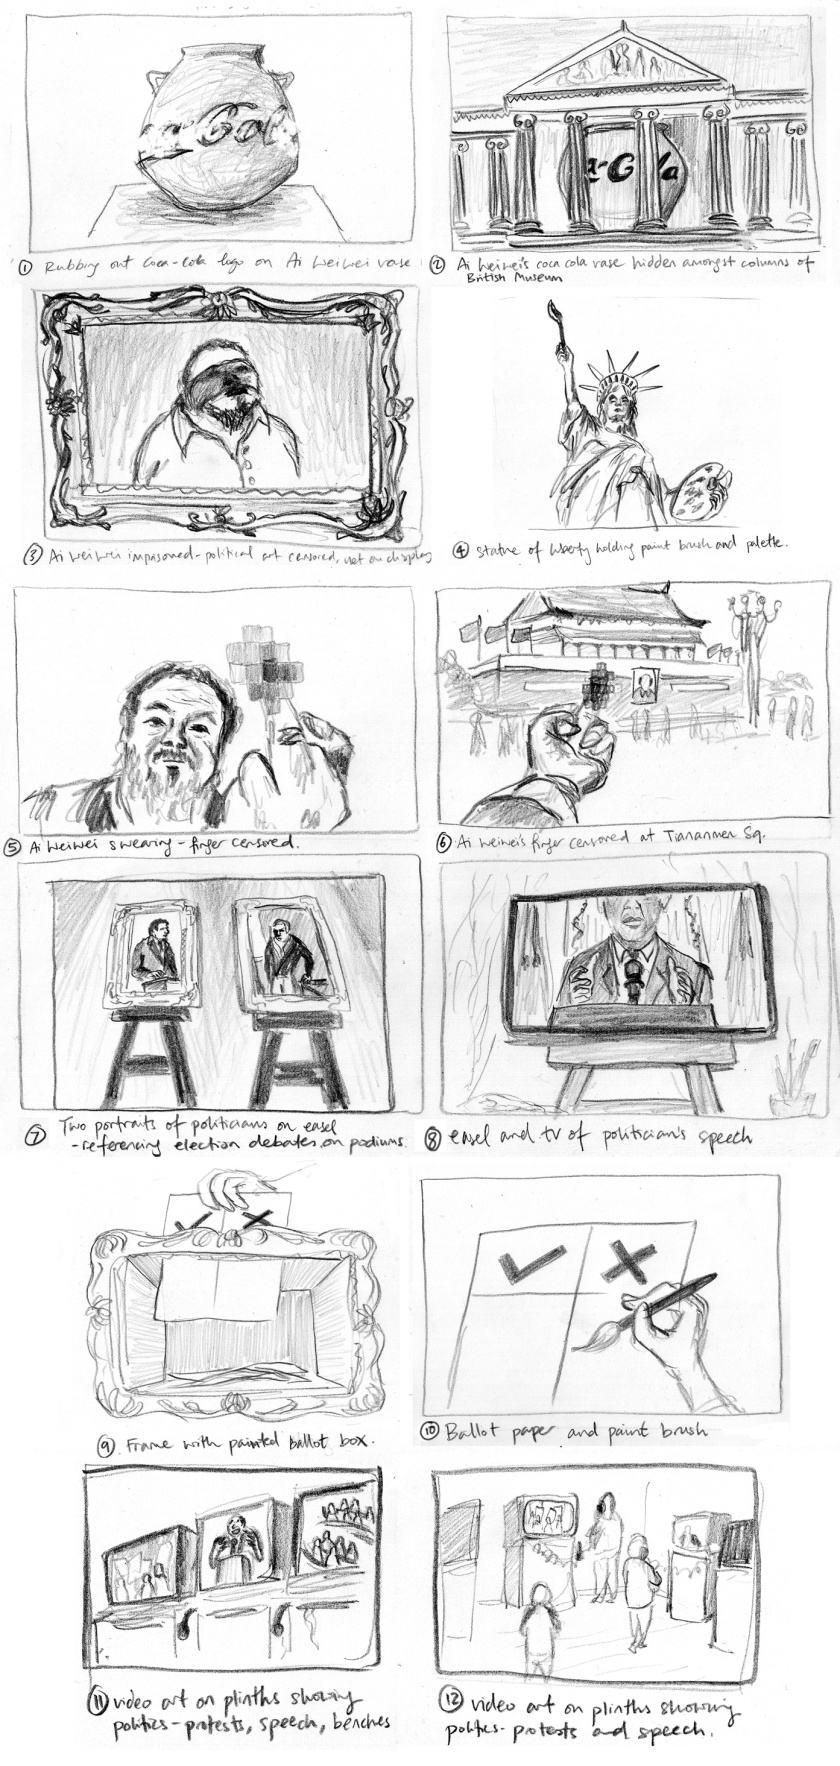 art-politics-sketches